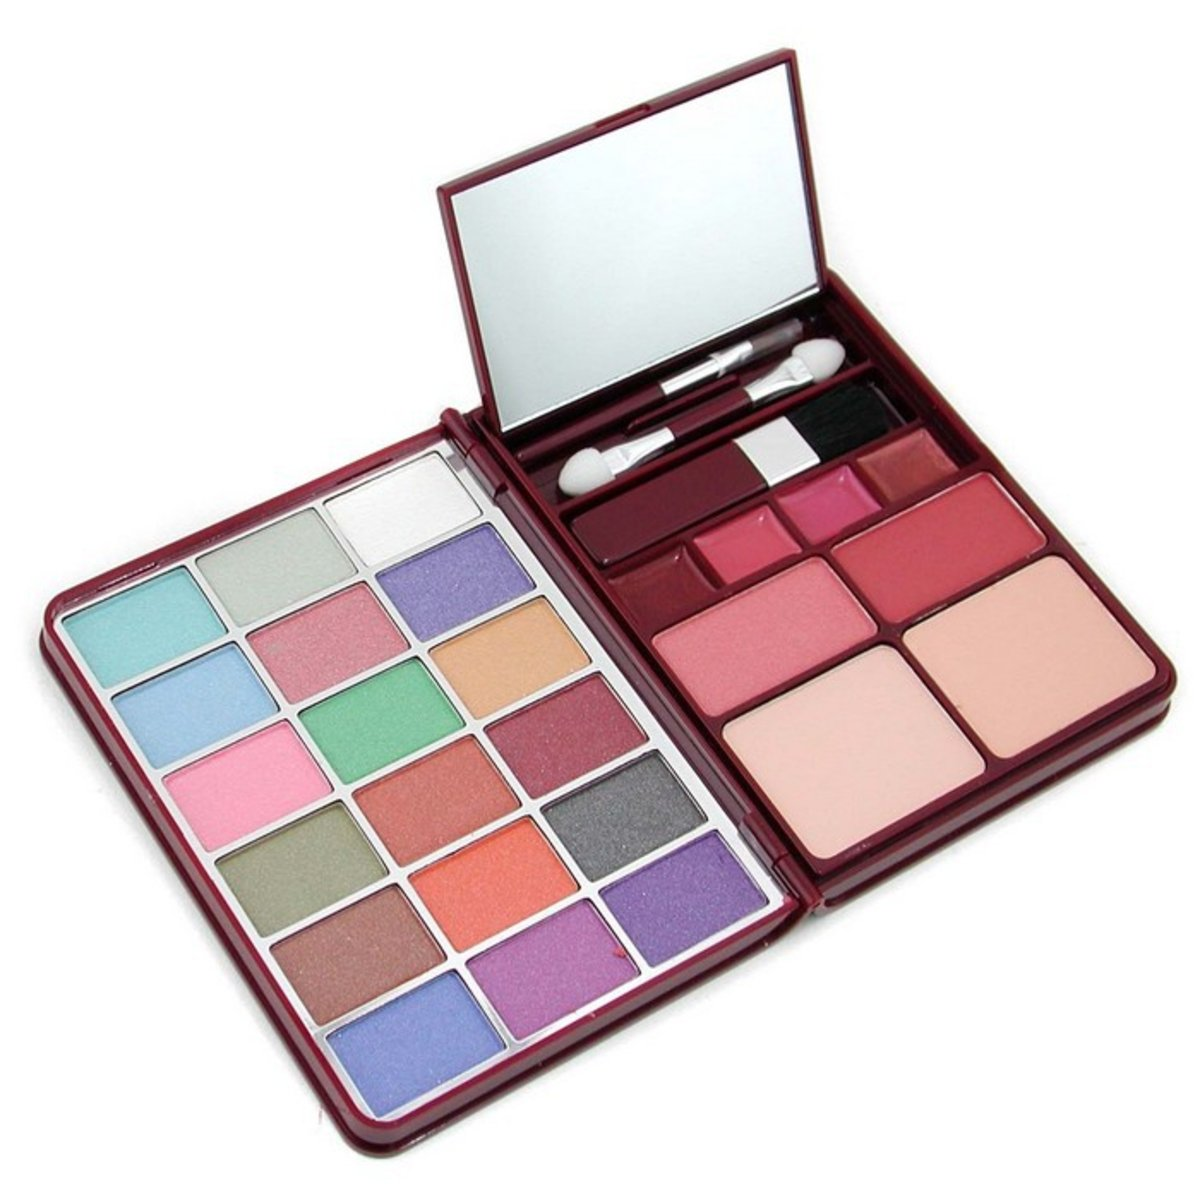 MakeUp Kit G0139 (18x Eyeshadow, 2x Blusher, 2x Pressed Powder, 4x Lipgloss) - 2  -[Parallel Import Product]